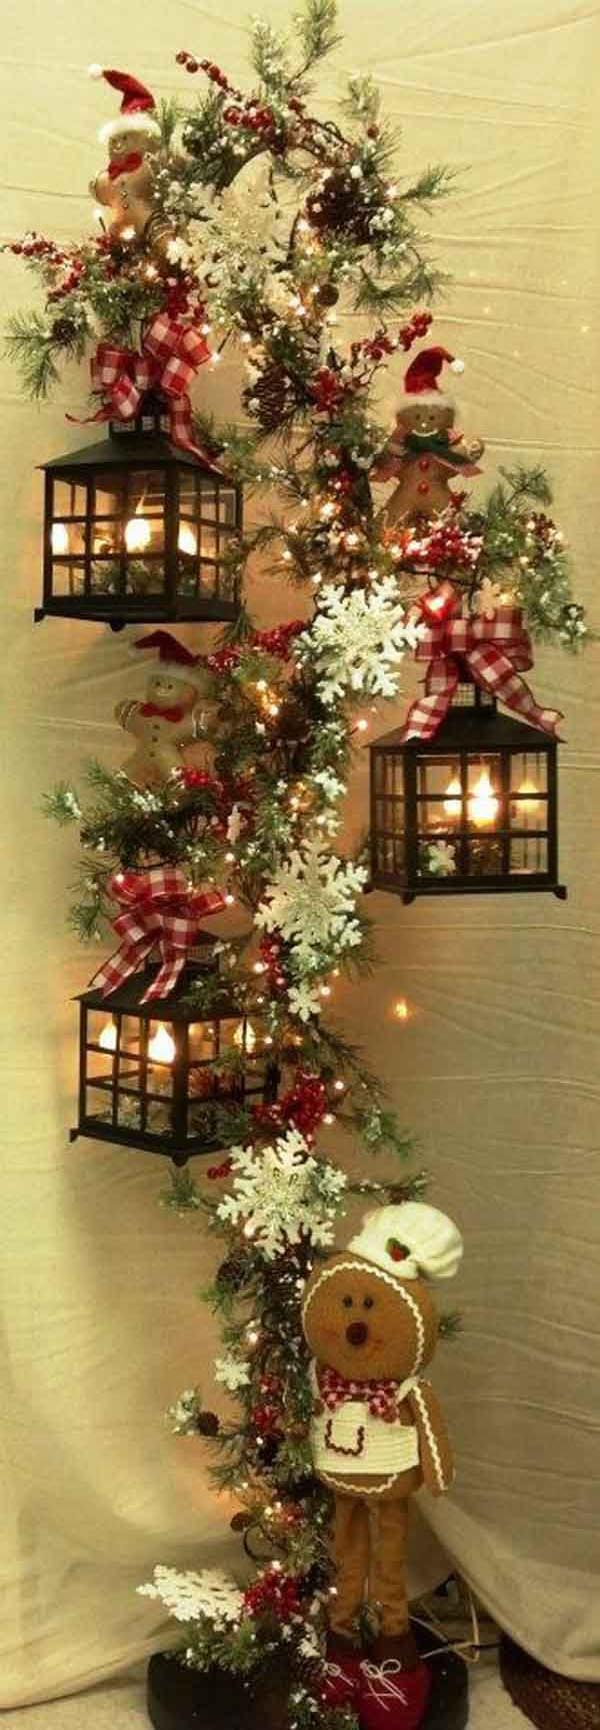 indoor-christmas-decorations-03